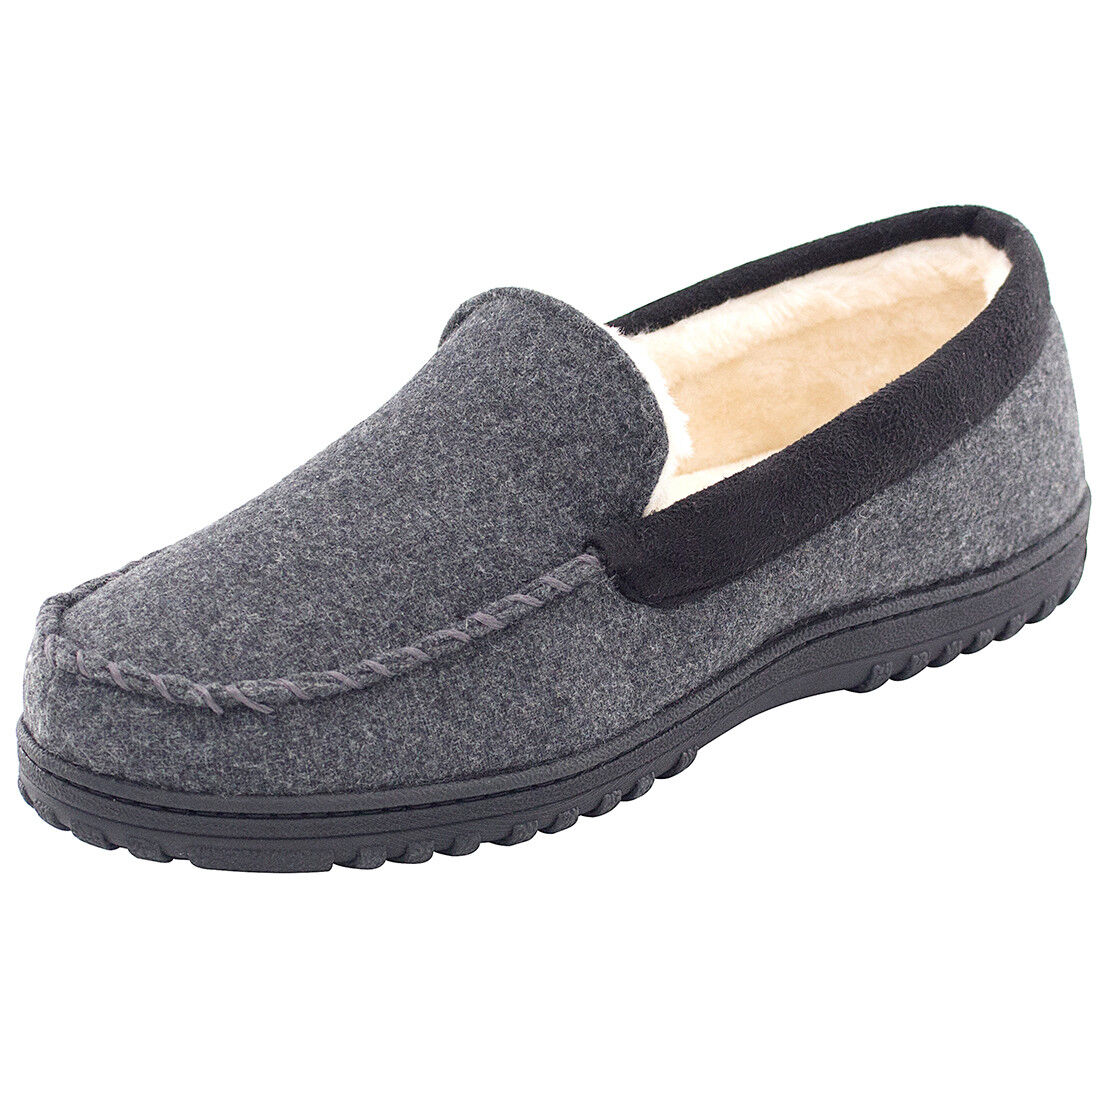 1a4aff45471f16 Details about Men's Comfy & Warm Wool Micro Suede Plush Fleece Lined Moccasin  Slippers Hous.